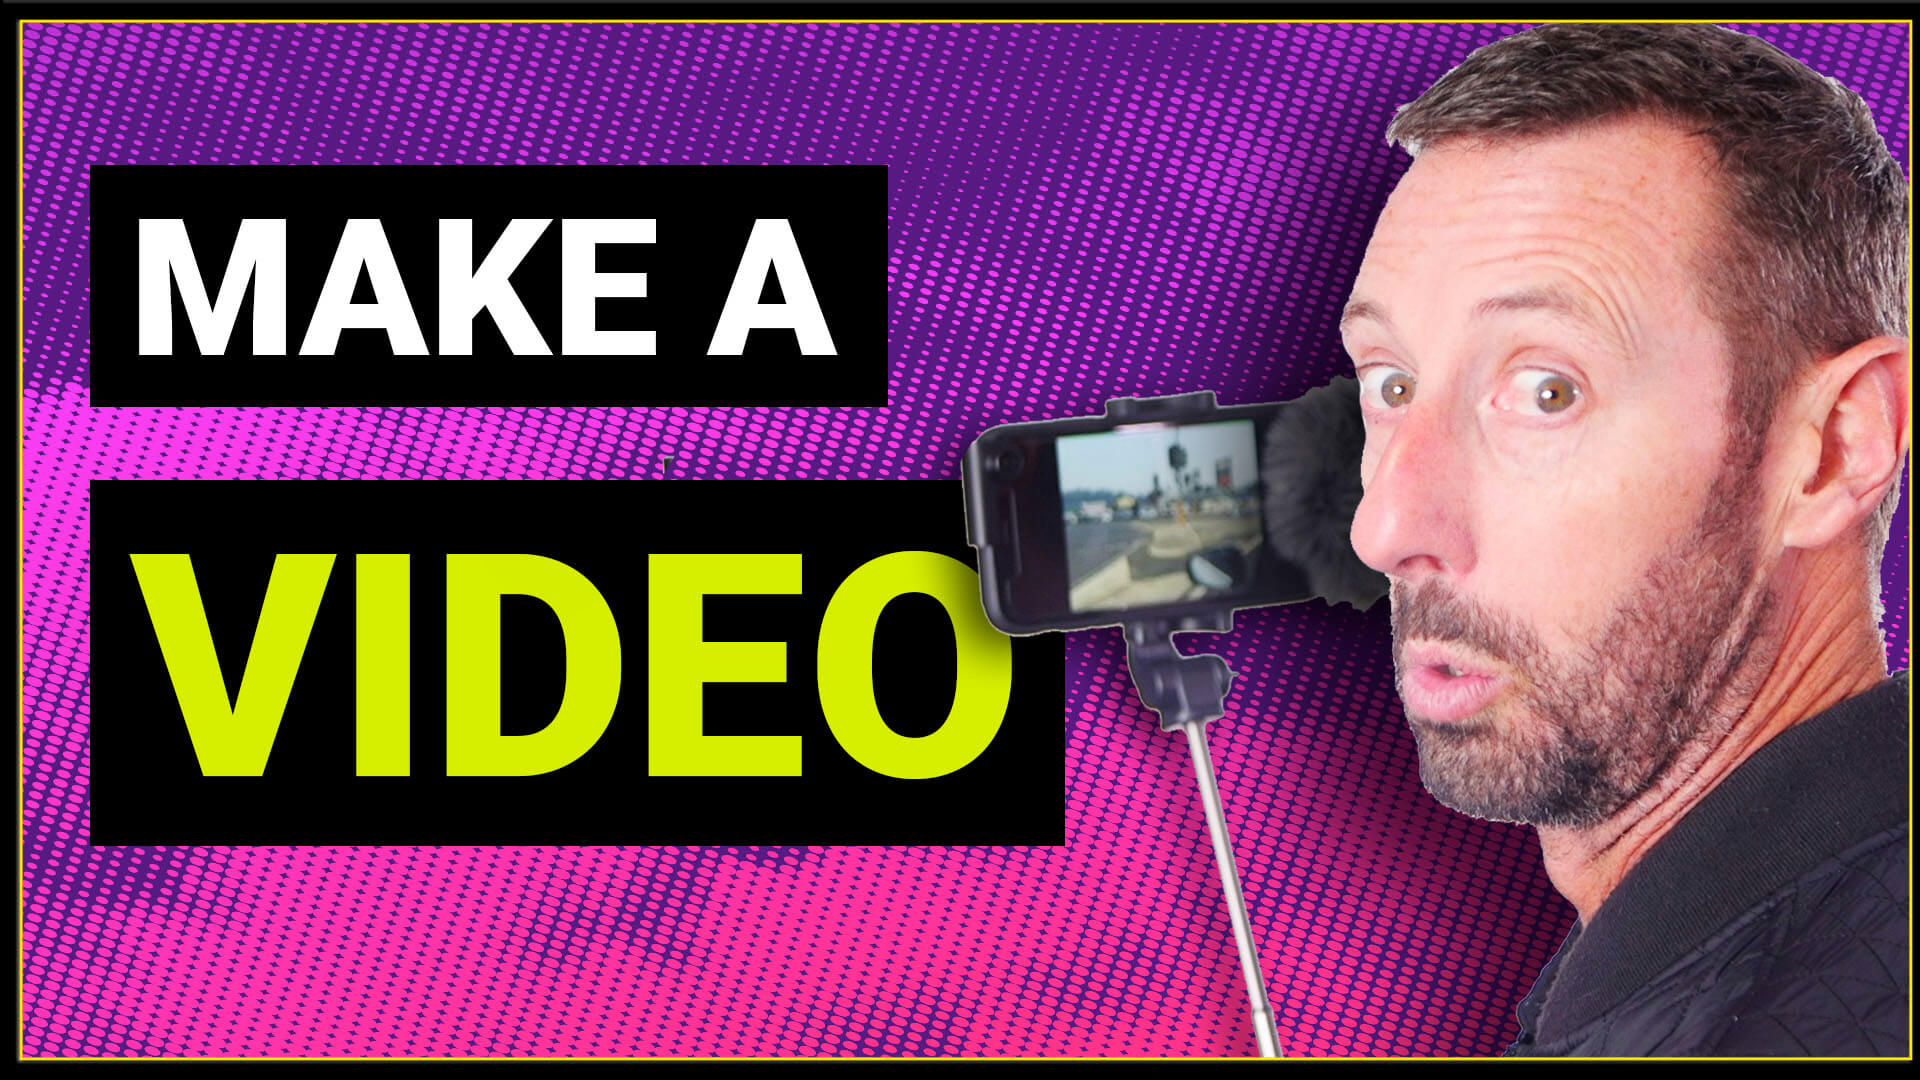 How to make a video – For businesses, YouTube or social media